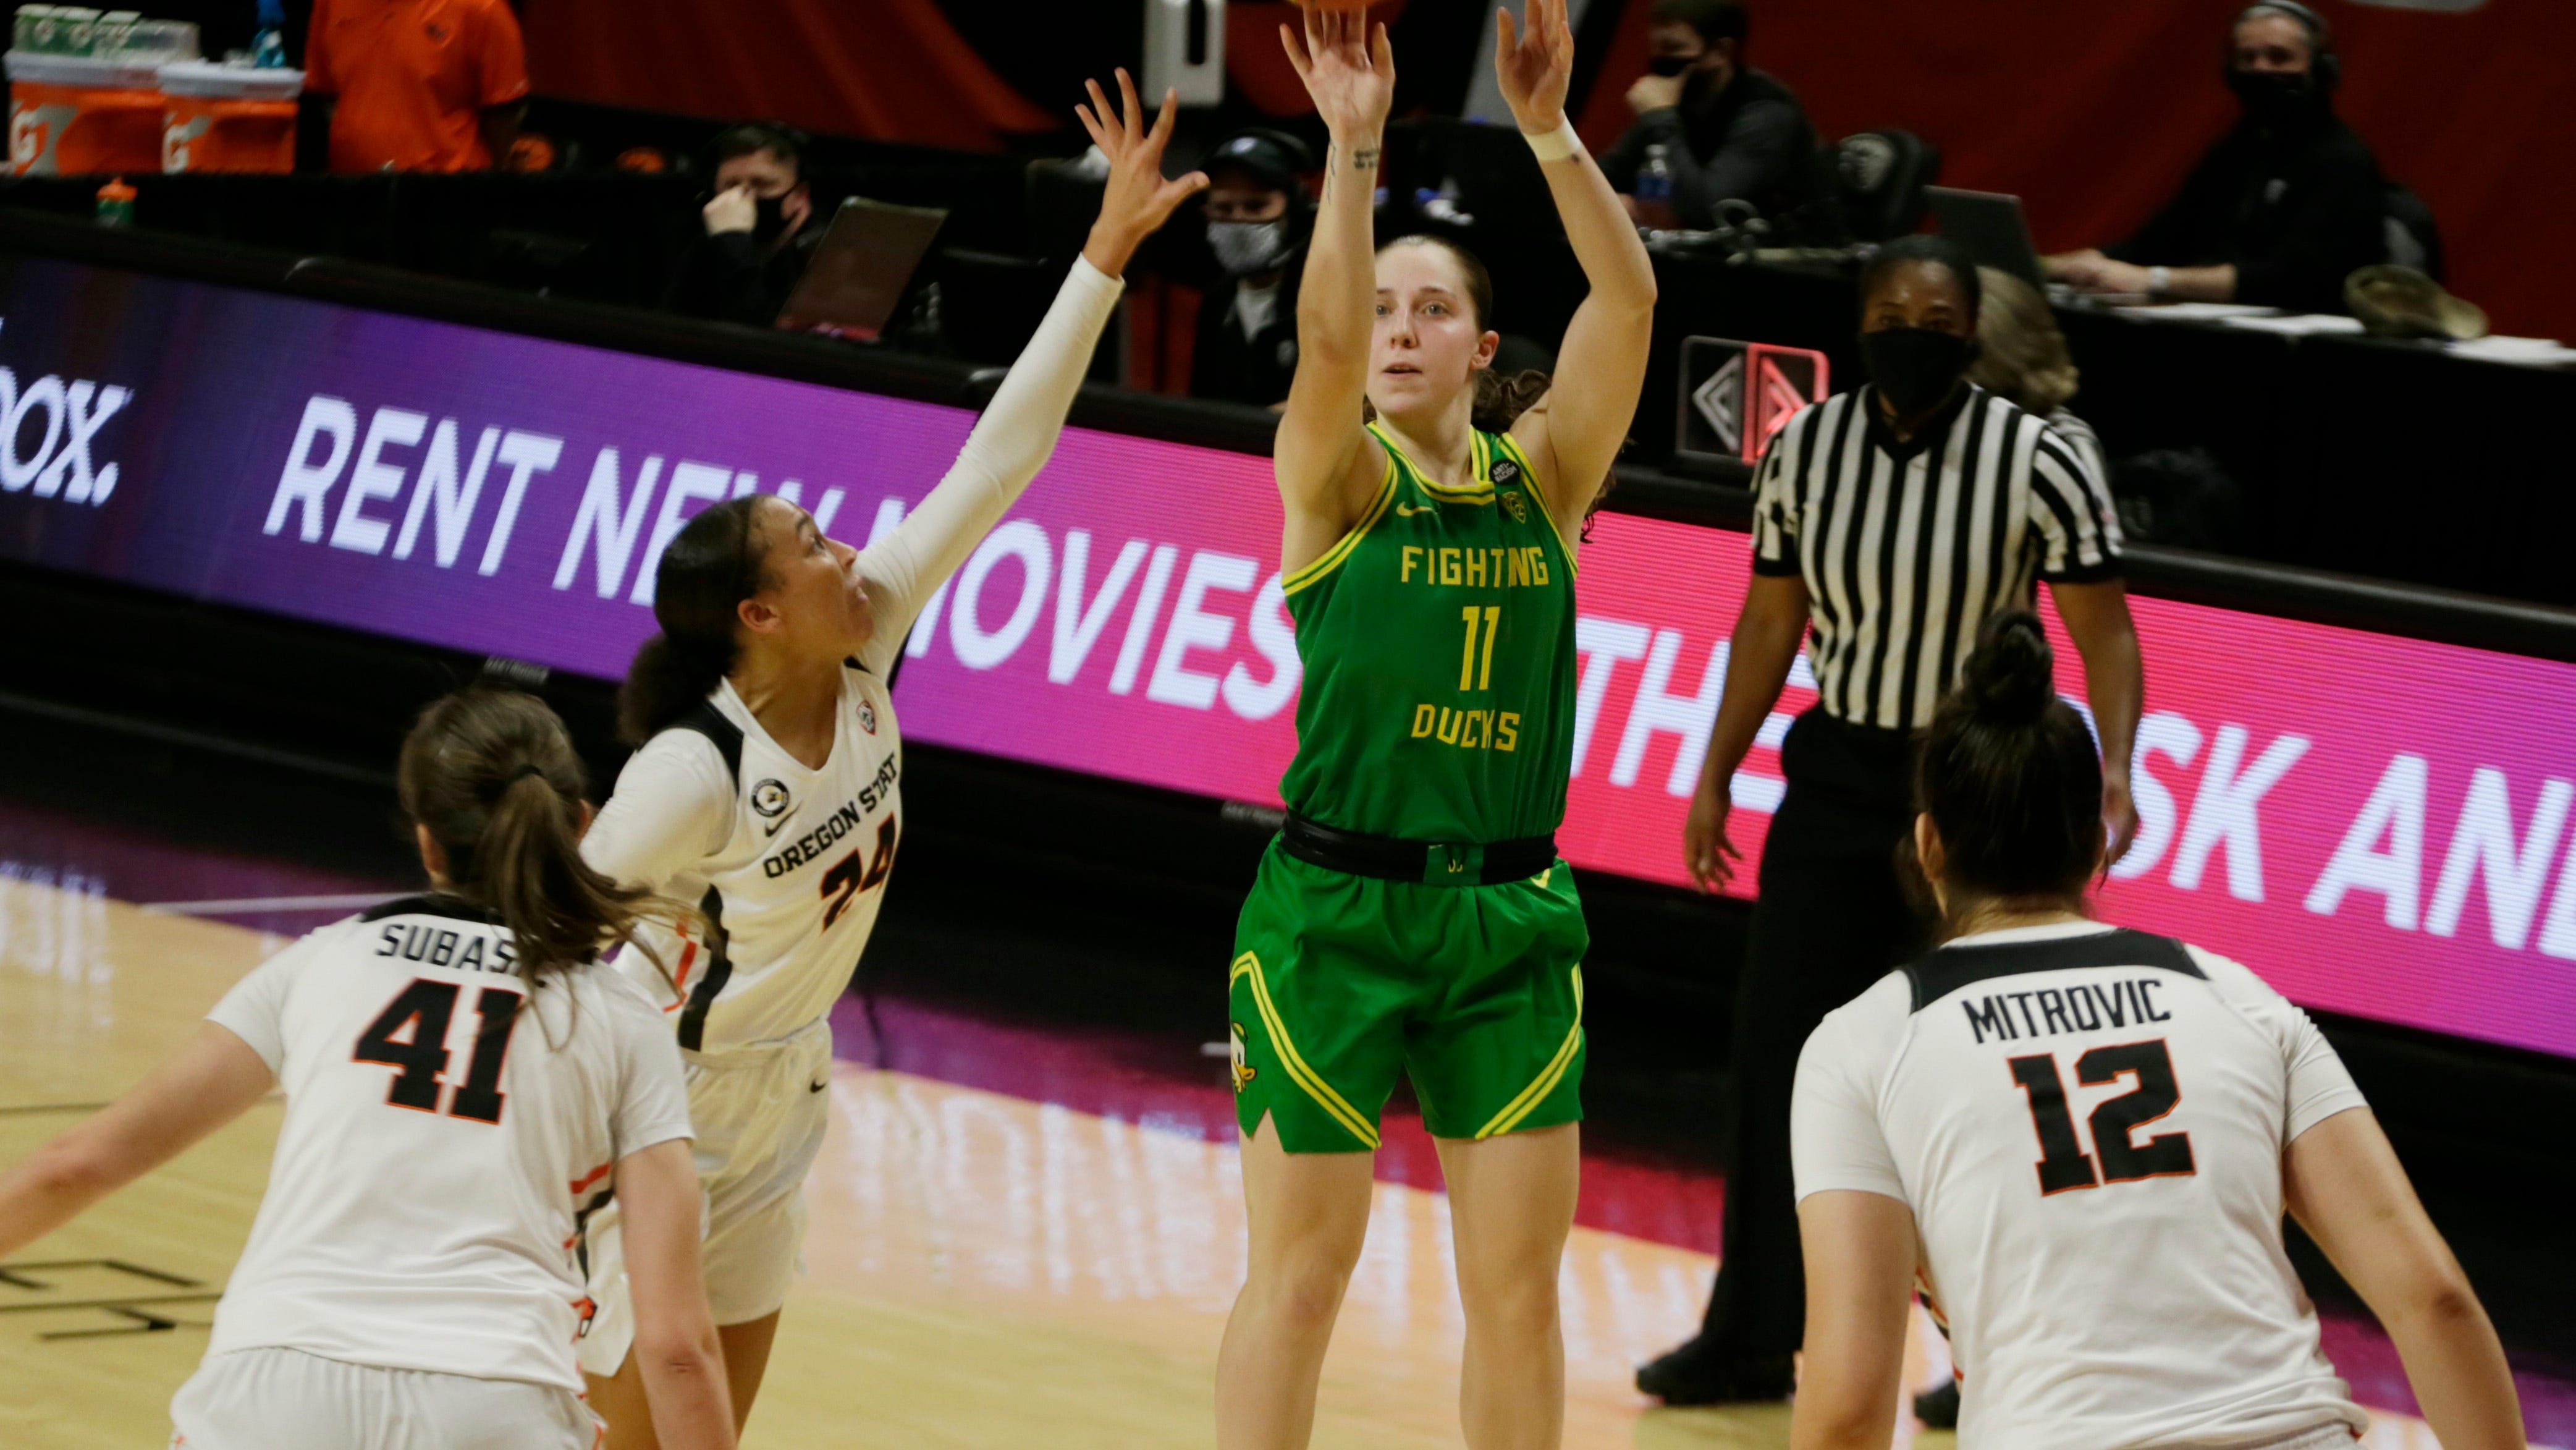 Jackson grad Mikesell adjusts to move to Oregon